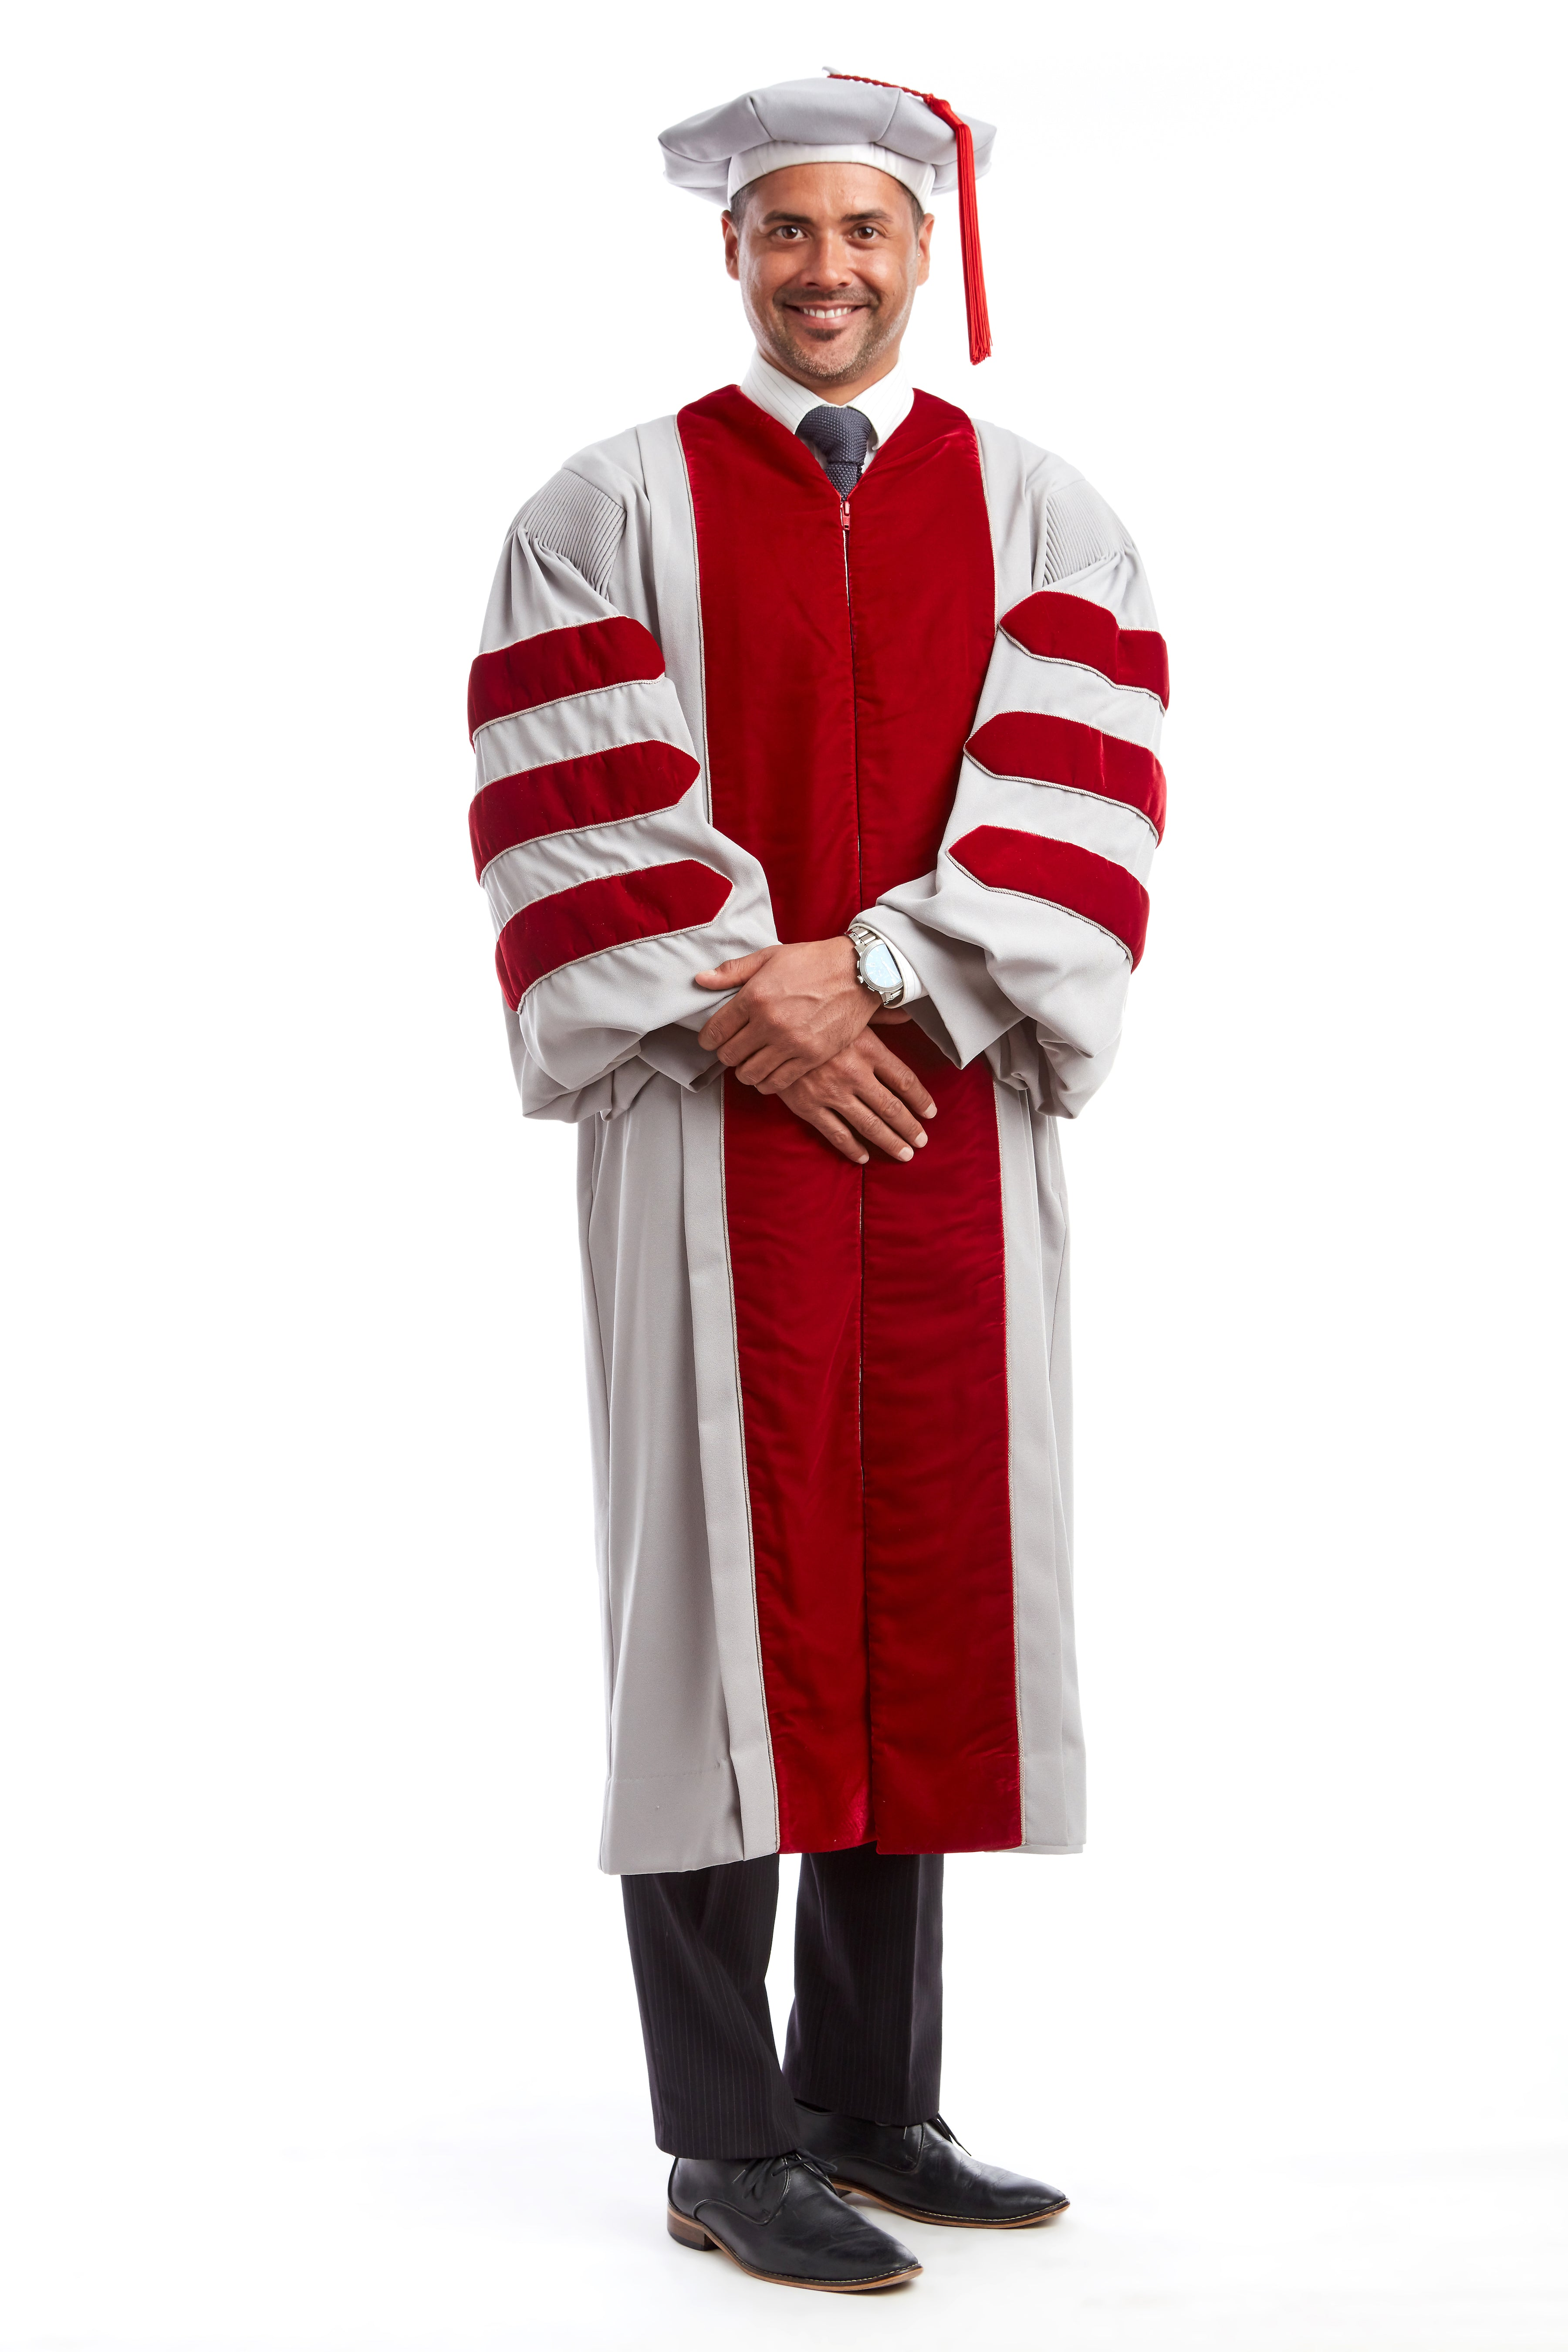 MIT Doctoral Regalia Set. Premium Grey and Cardinal Red Gown with Eight-Sided Cap/Tam including Red Tassel